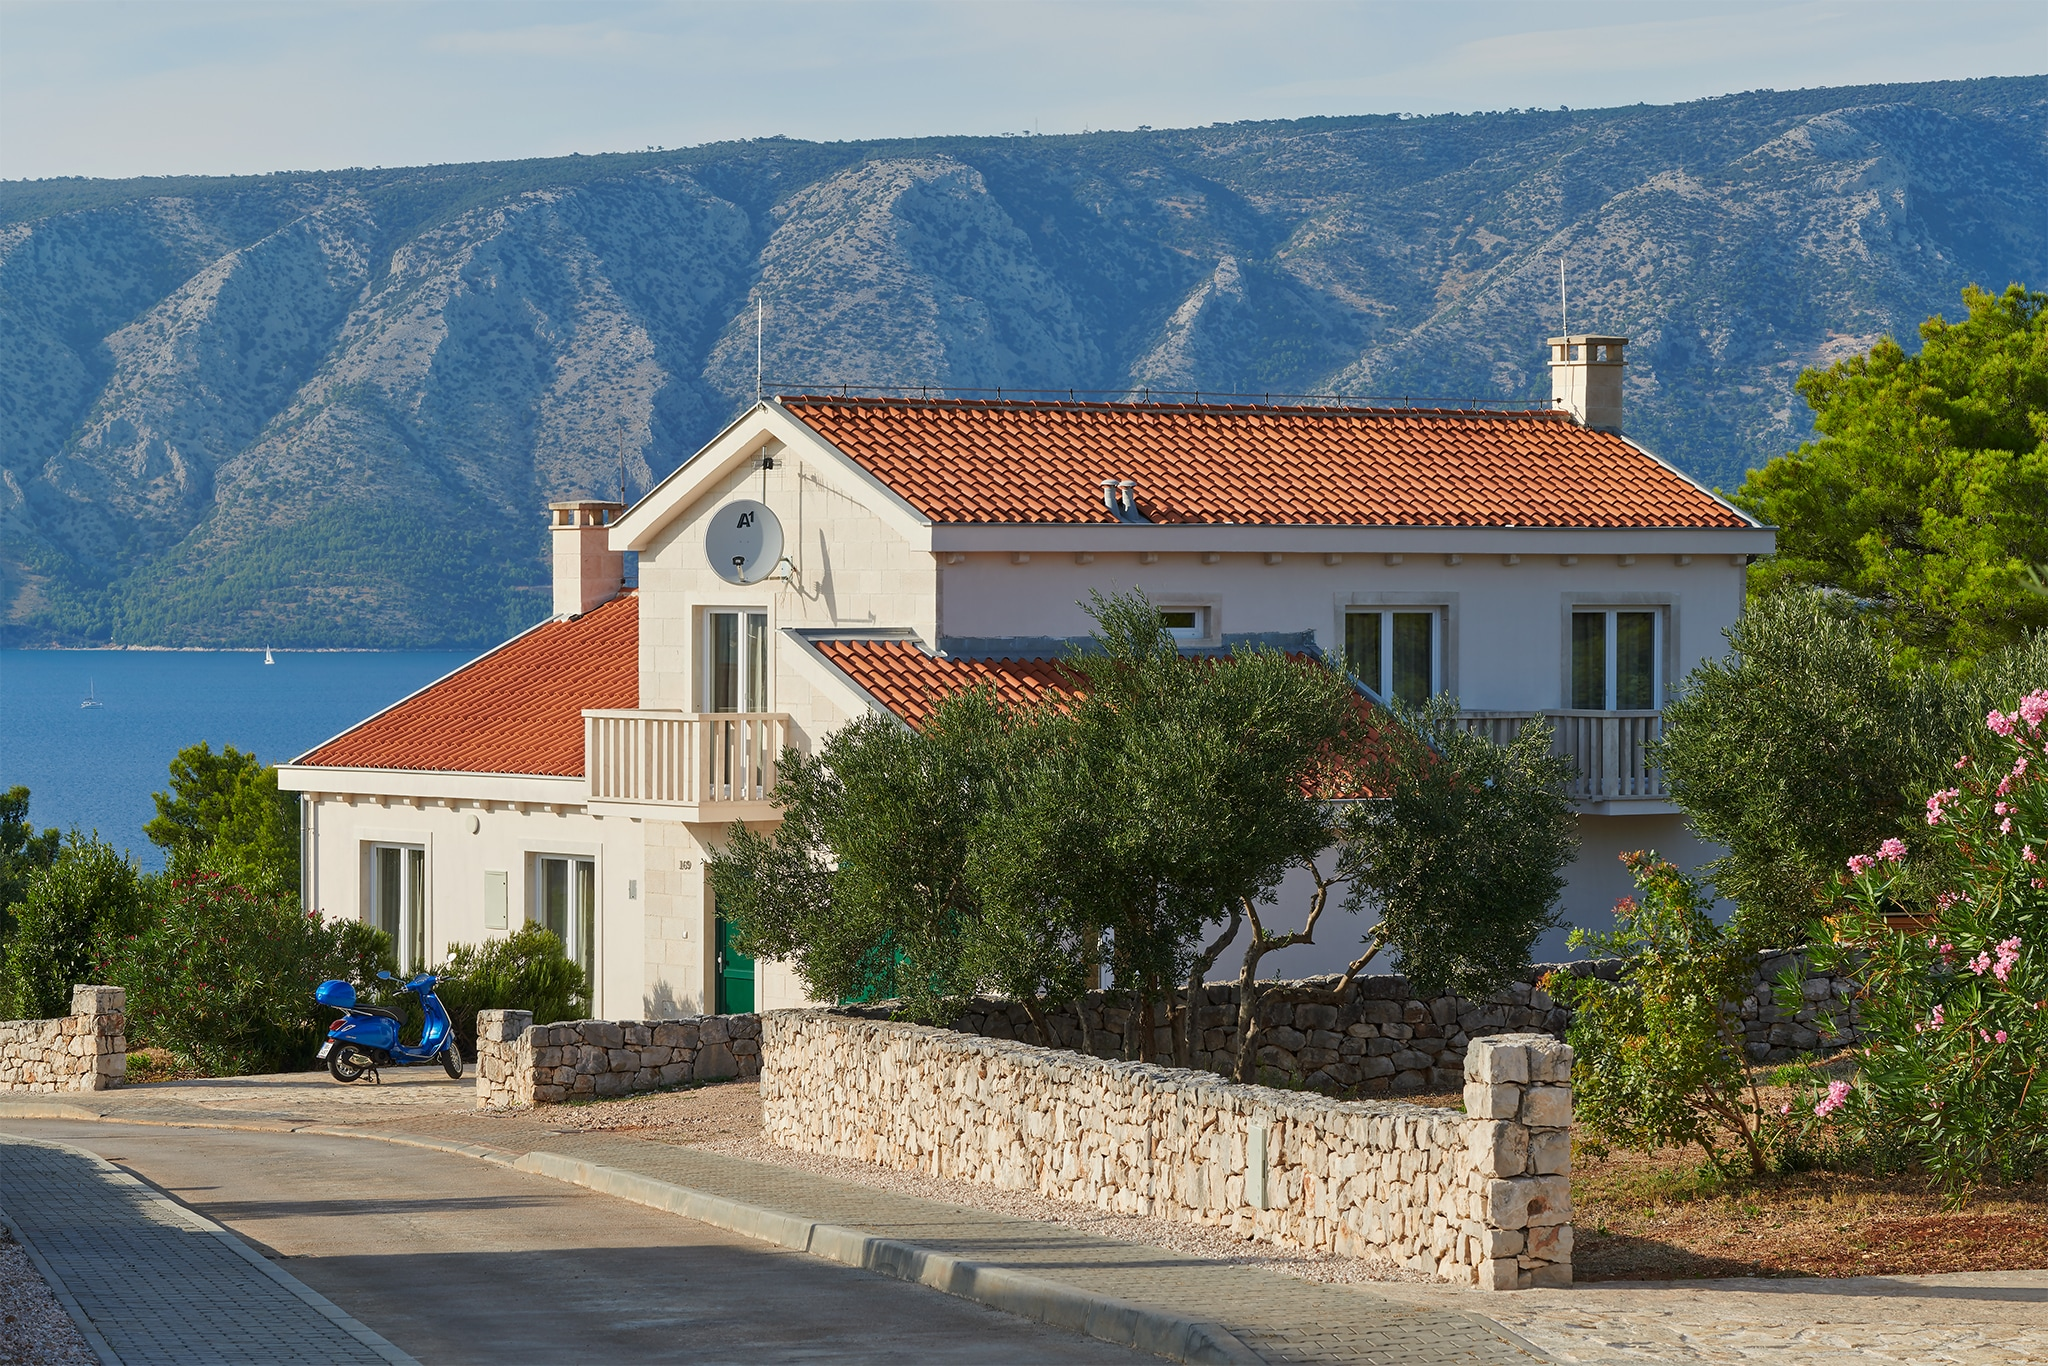 Property Image 1 - Peaceful Seaside Villa with Pool in the Adriatic Sea